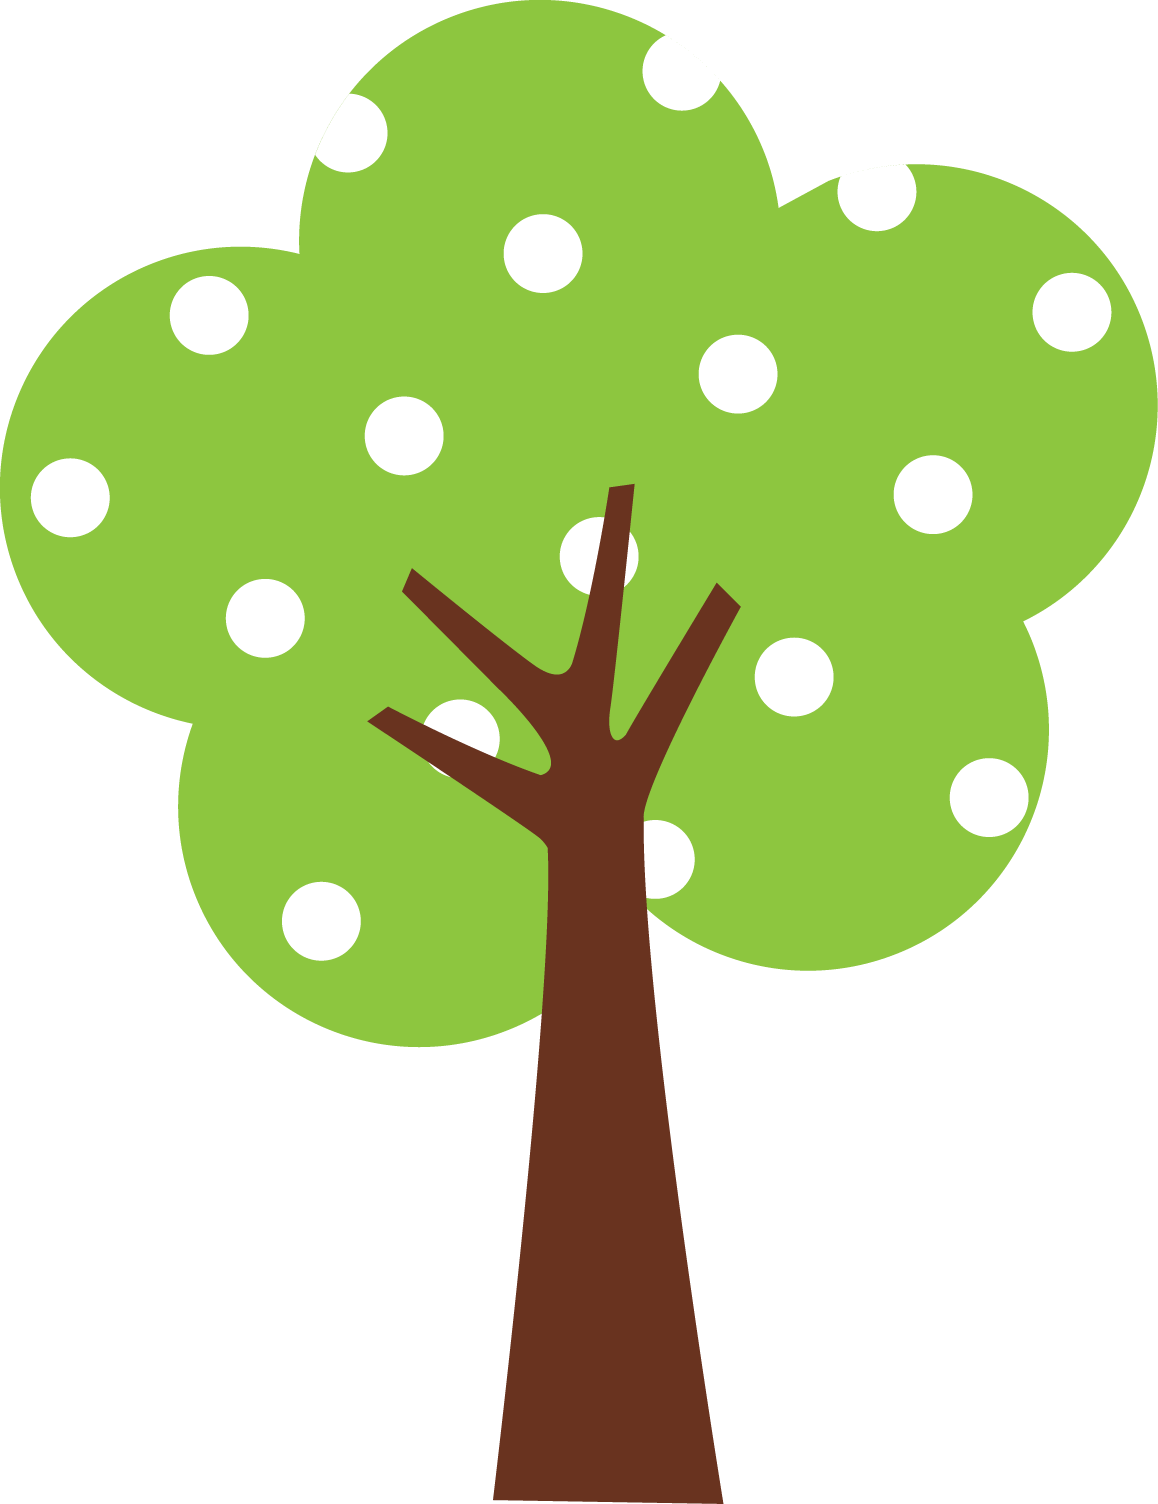 Tree with birds clipart png freeuse library Photo by @daniellemoraesfalcao - Minus | stromy | Pinterest | Clip ... png freeuse library